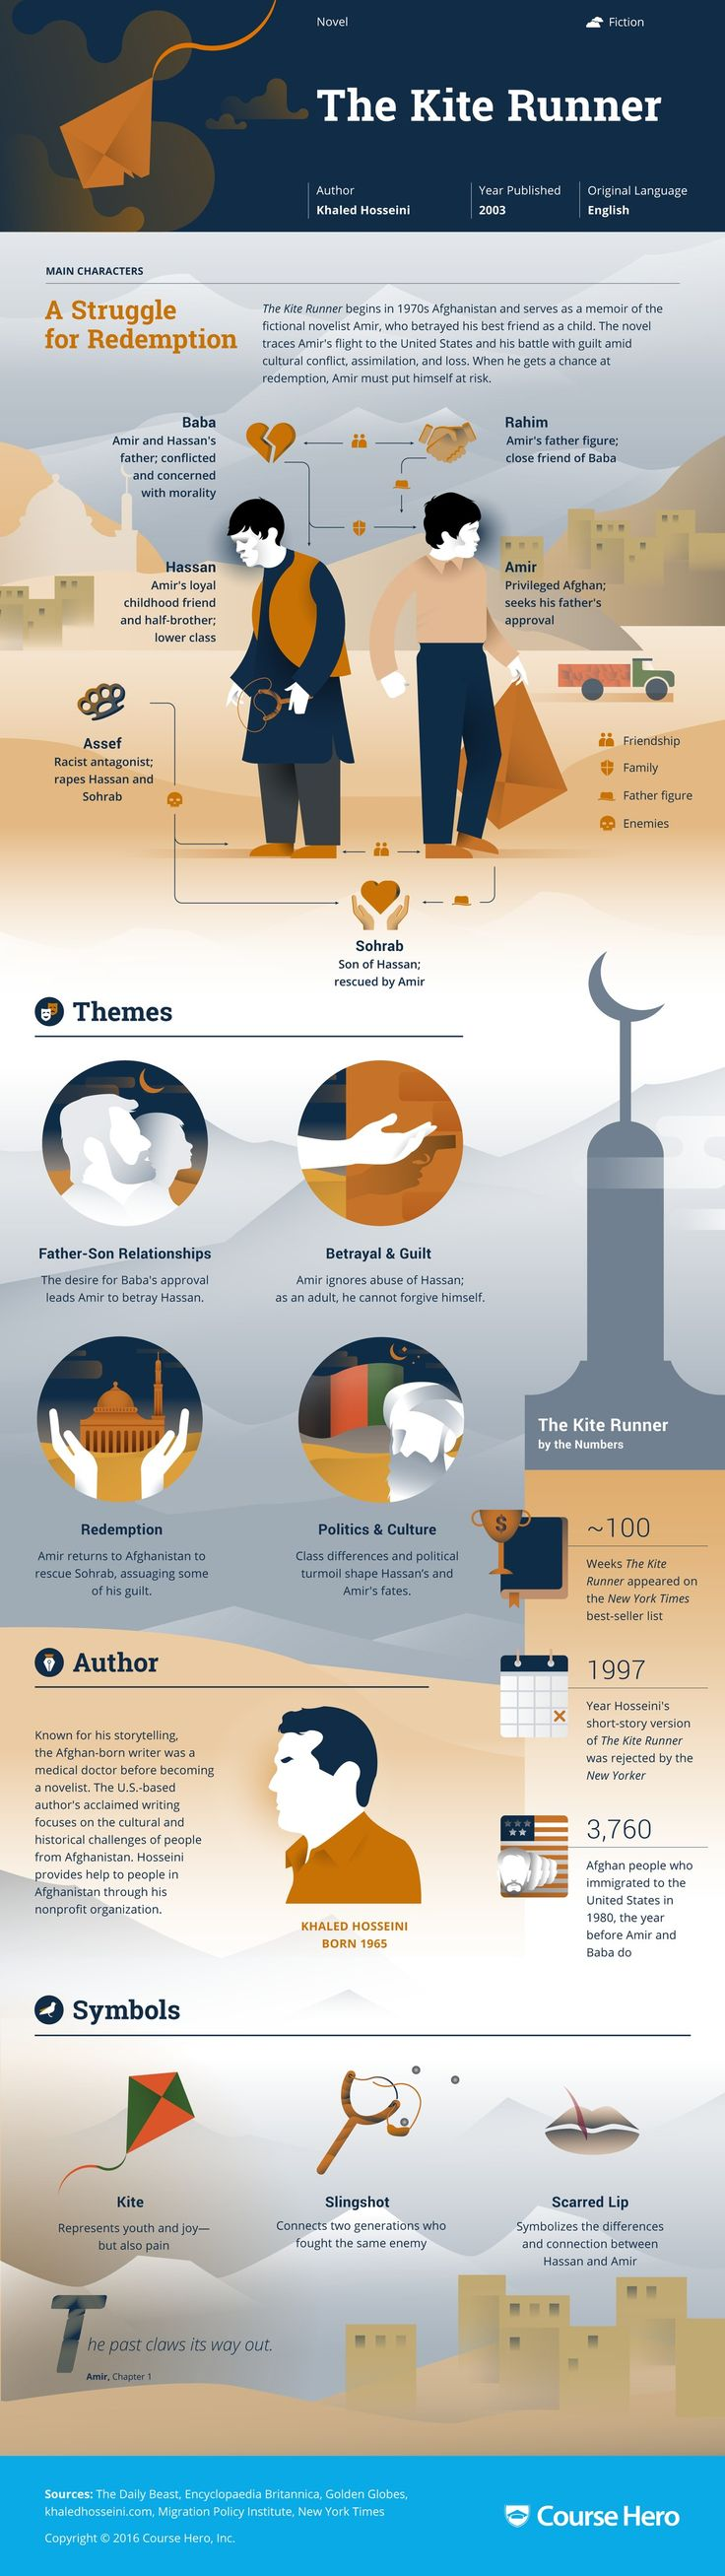 best ideas about the kite runner the kite runner the kite runner infographic course hero